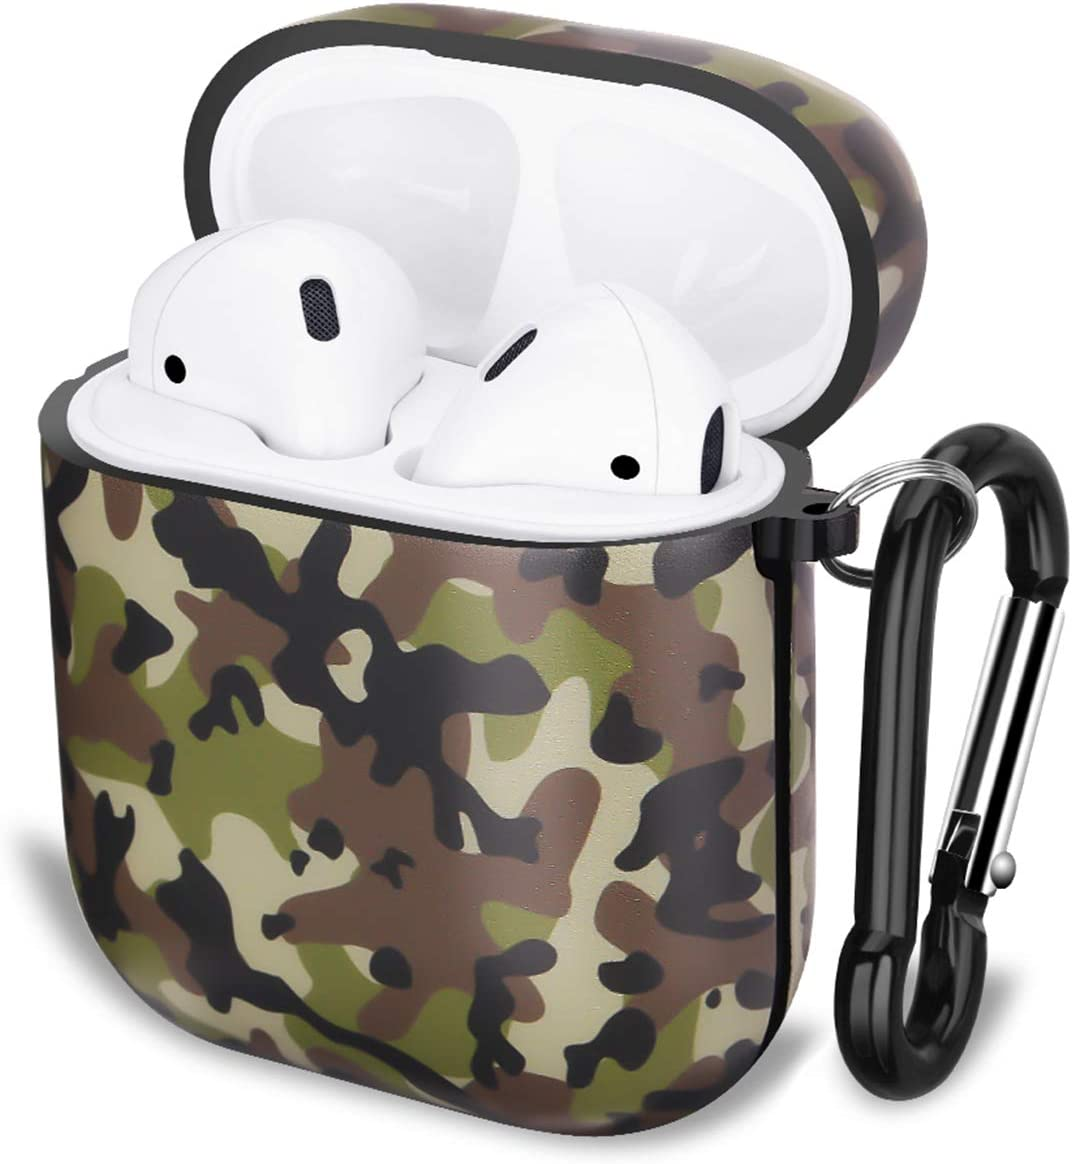 GOLINK Case for Airpods,Camo Series Protective Shockproof TPU Gel Case with Printing for Airpods 1st/2nd Charging Case(Military Brown)